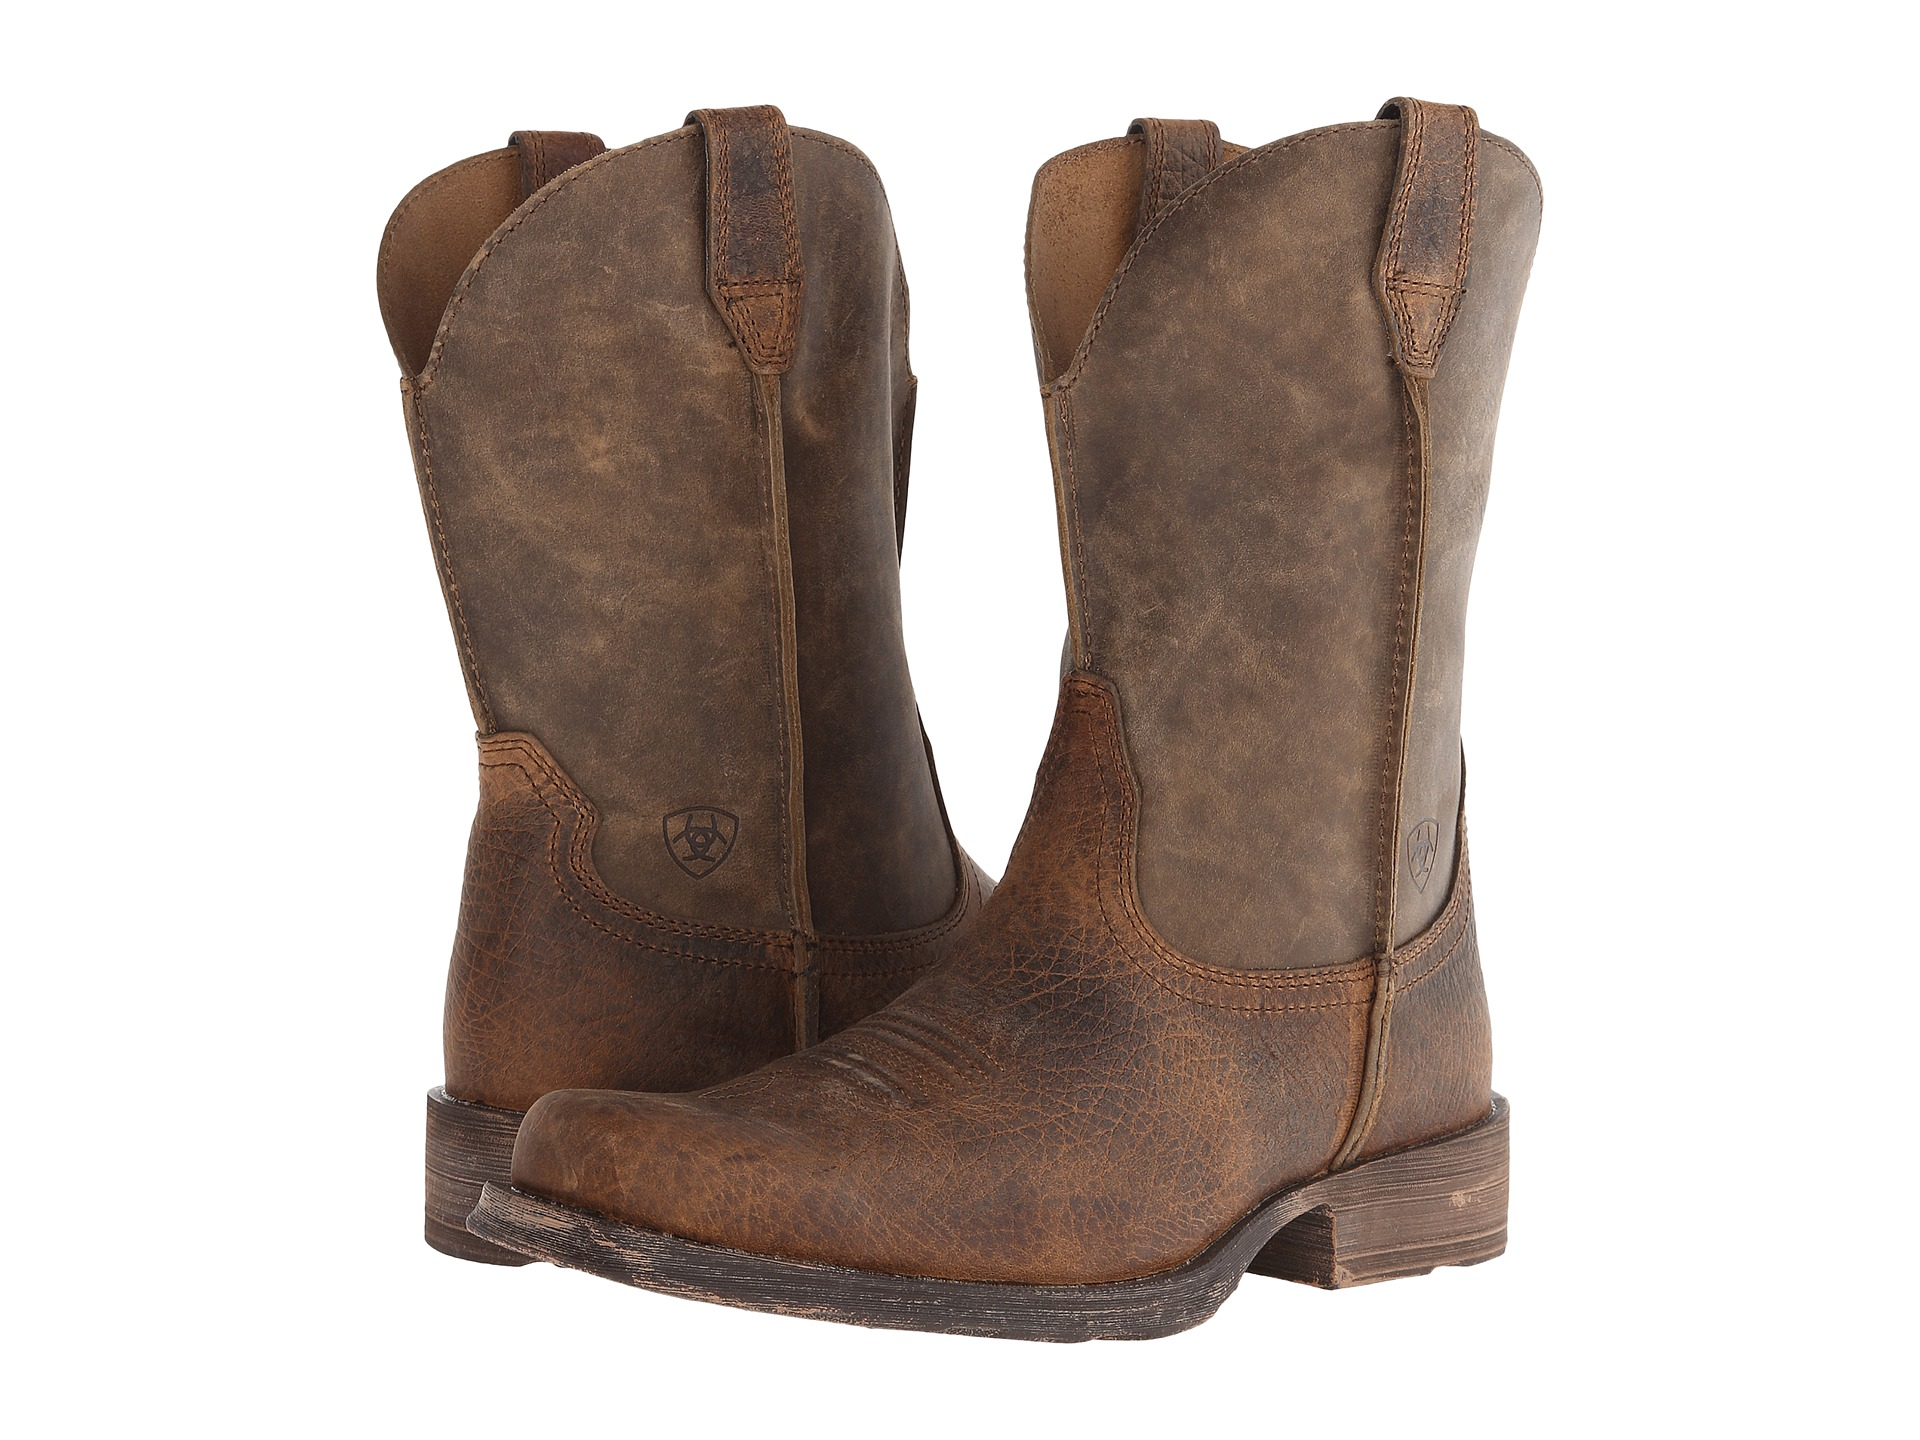 Ariat, Boots, Men | Shipped Free at Zappos